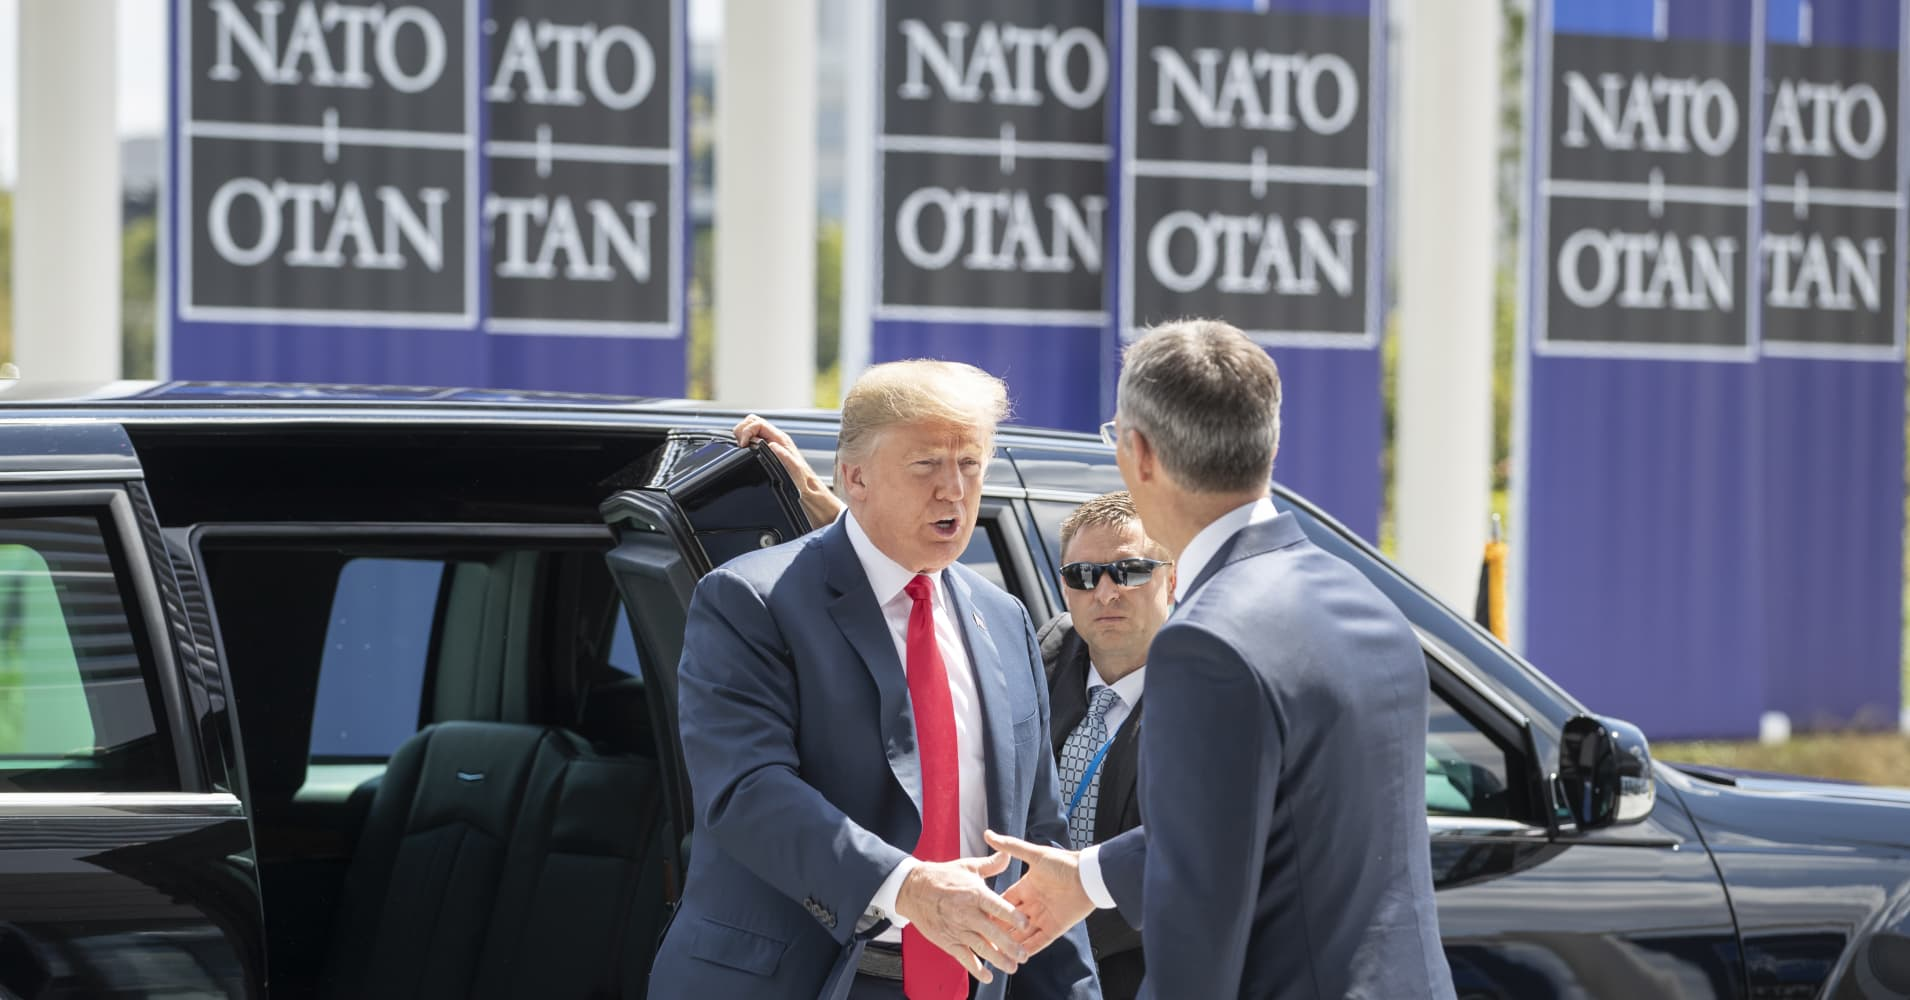 How Trump's NATO summit and Putin meeting could shape the future of the West